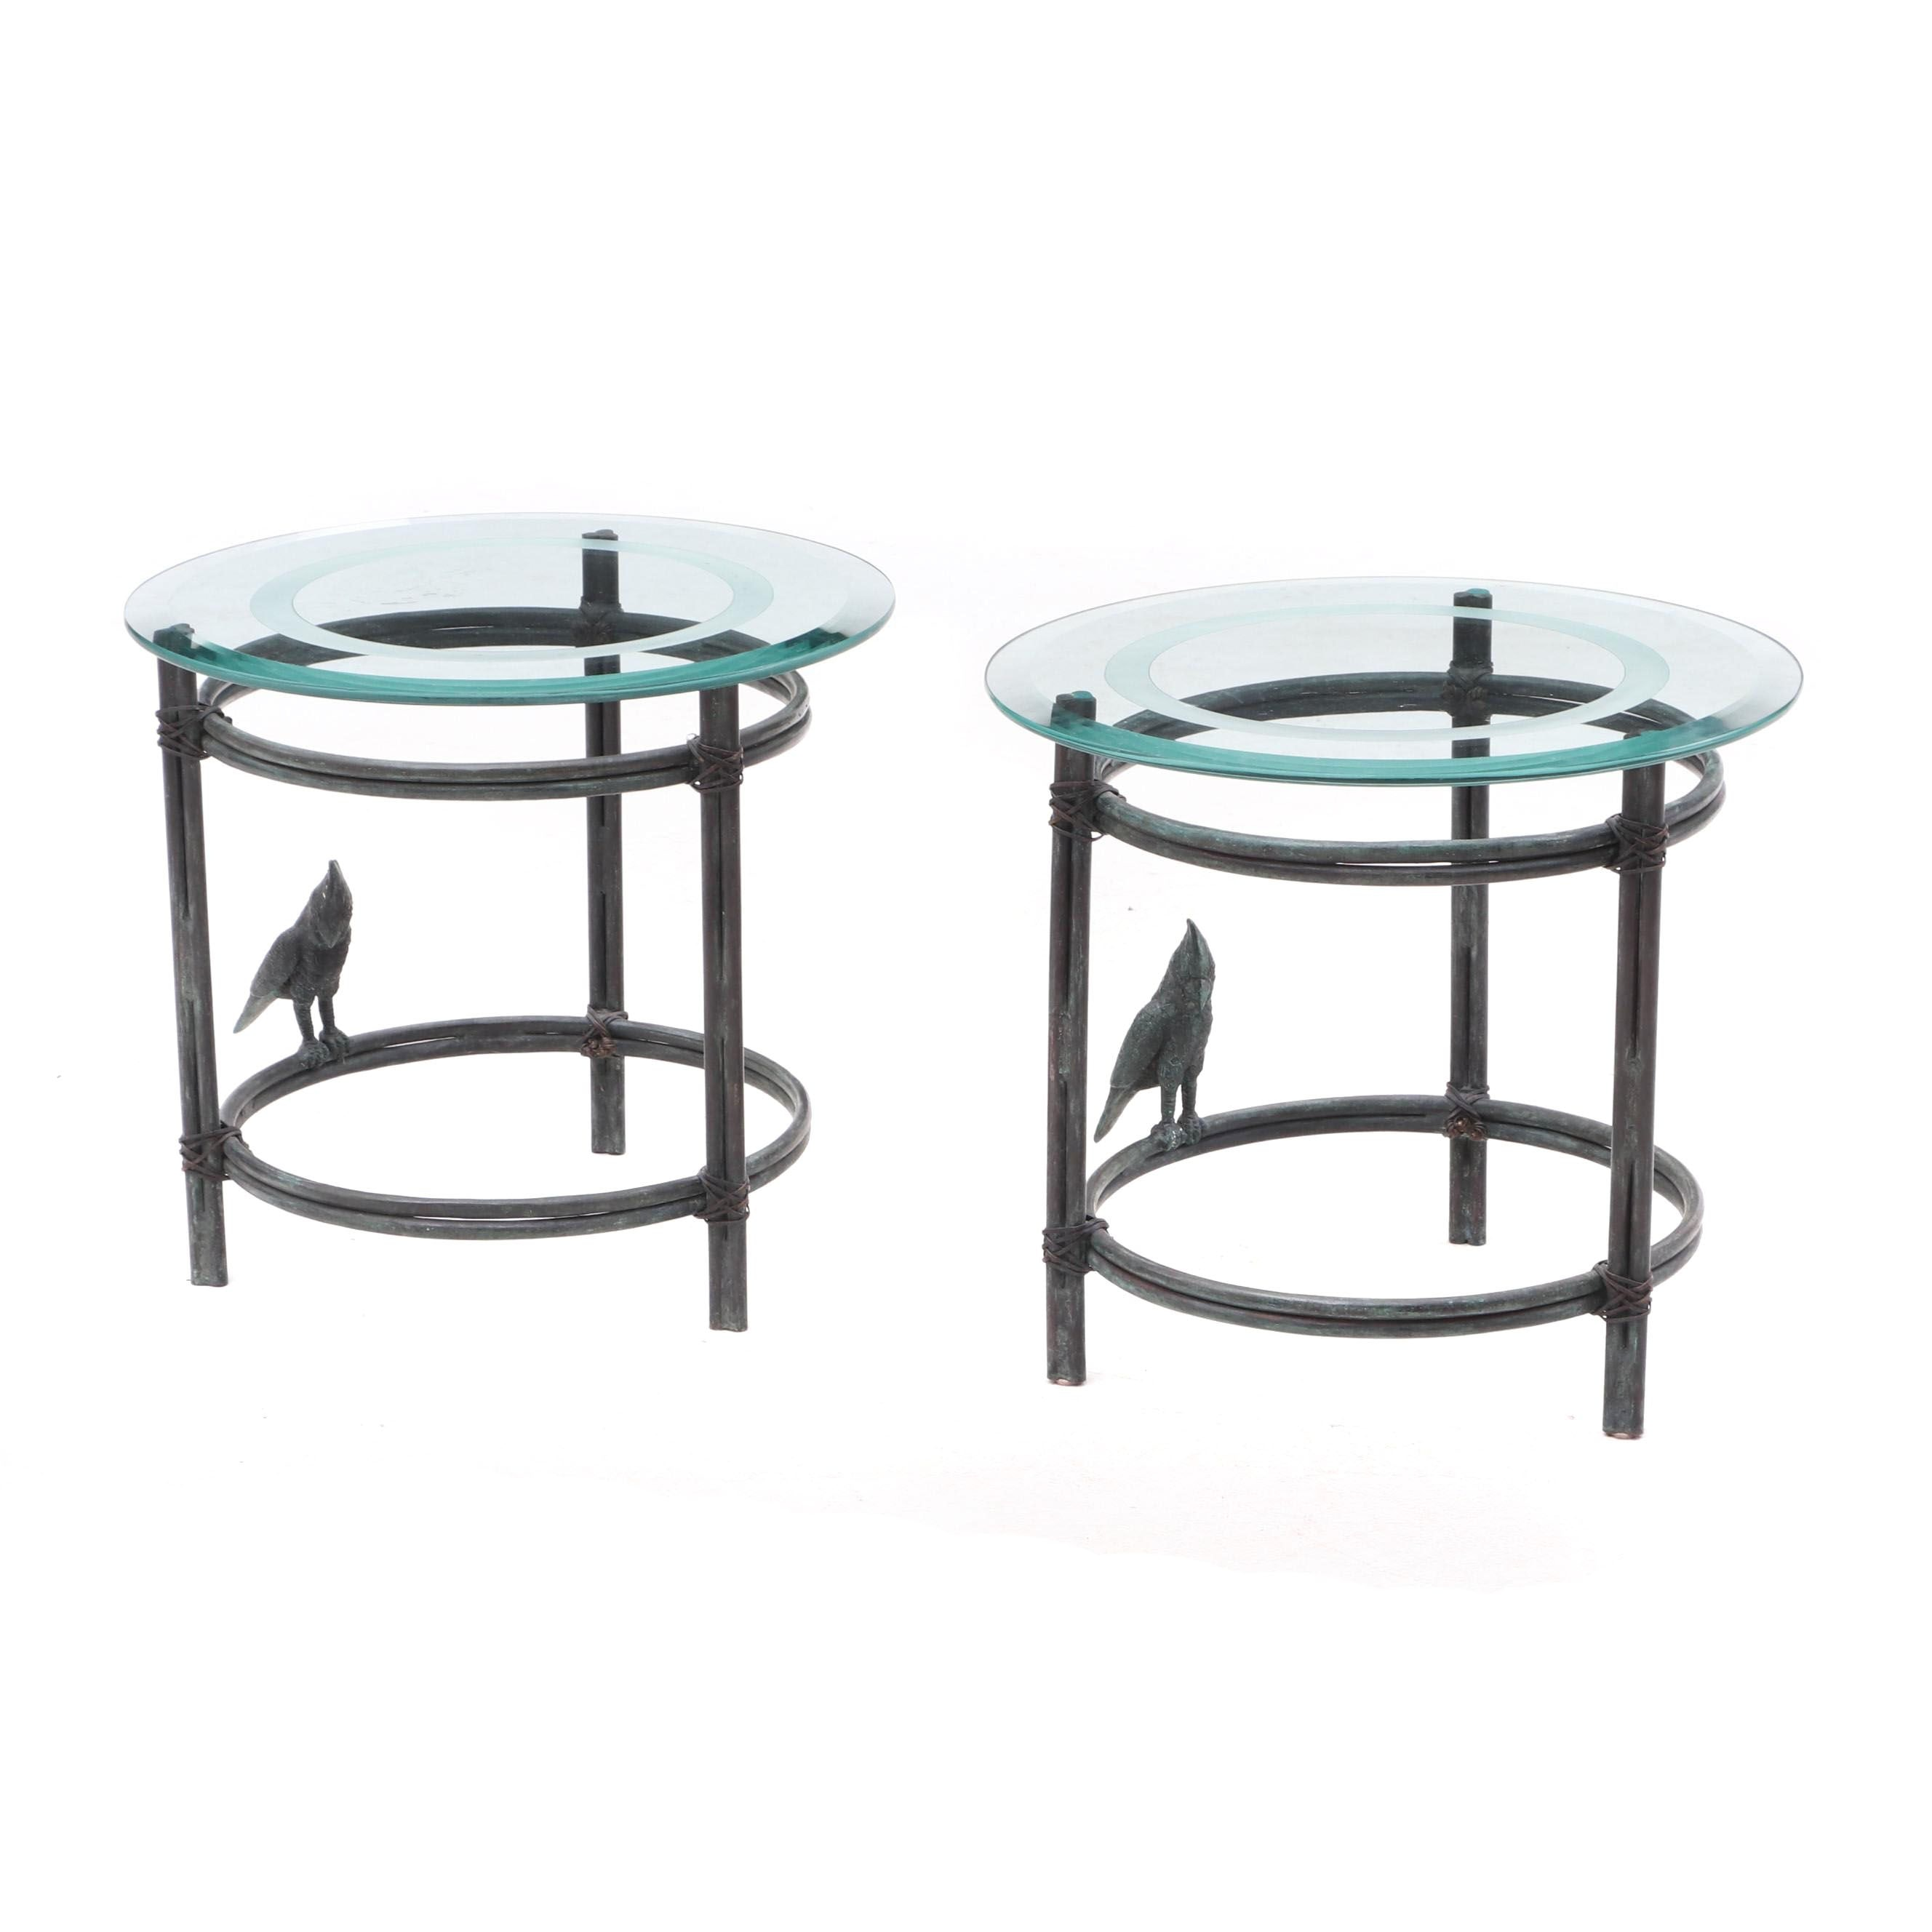 Two Outdoor Etched Glass Metal Side Tables with Bird Accent